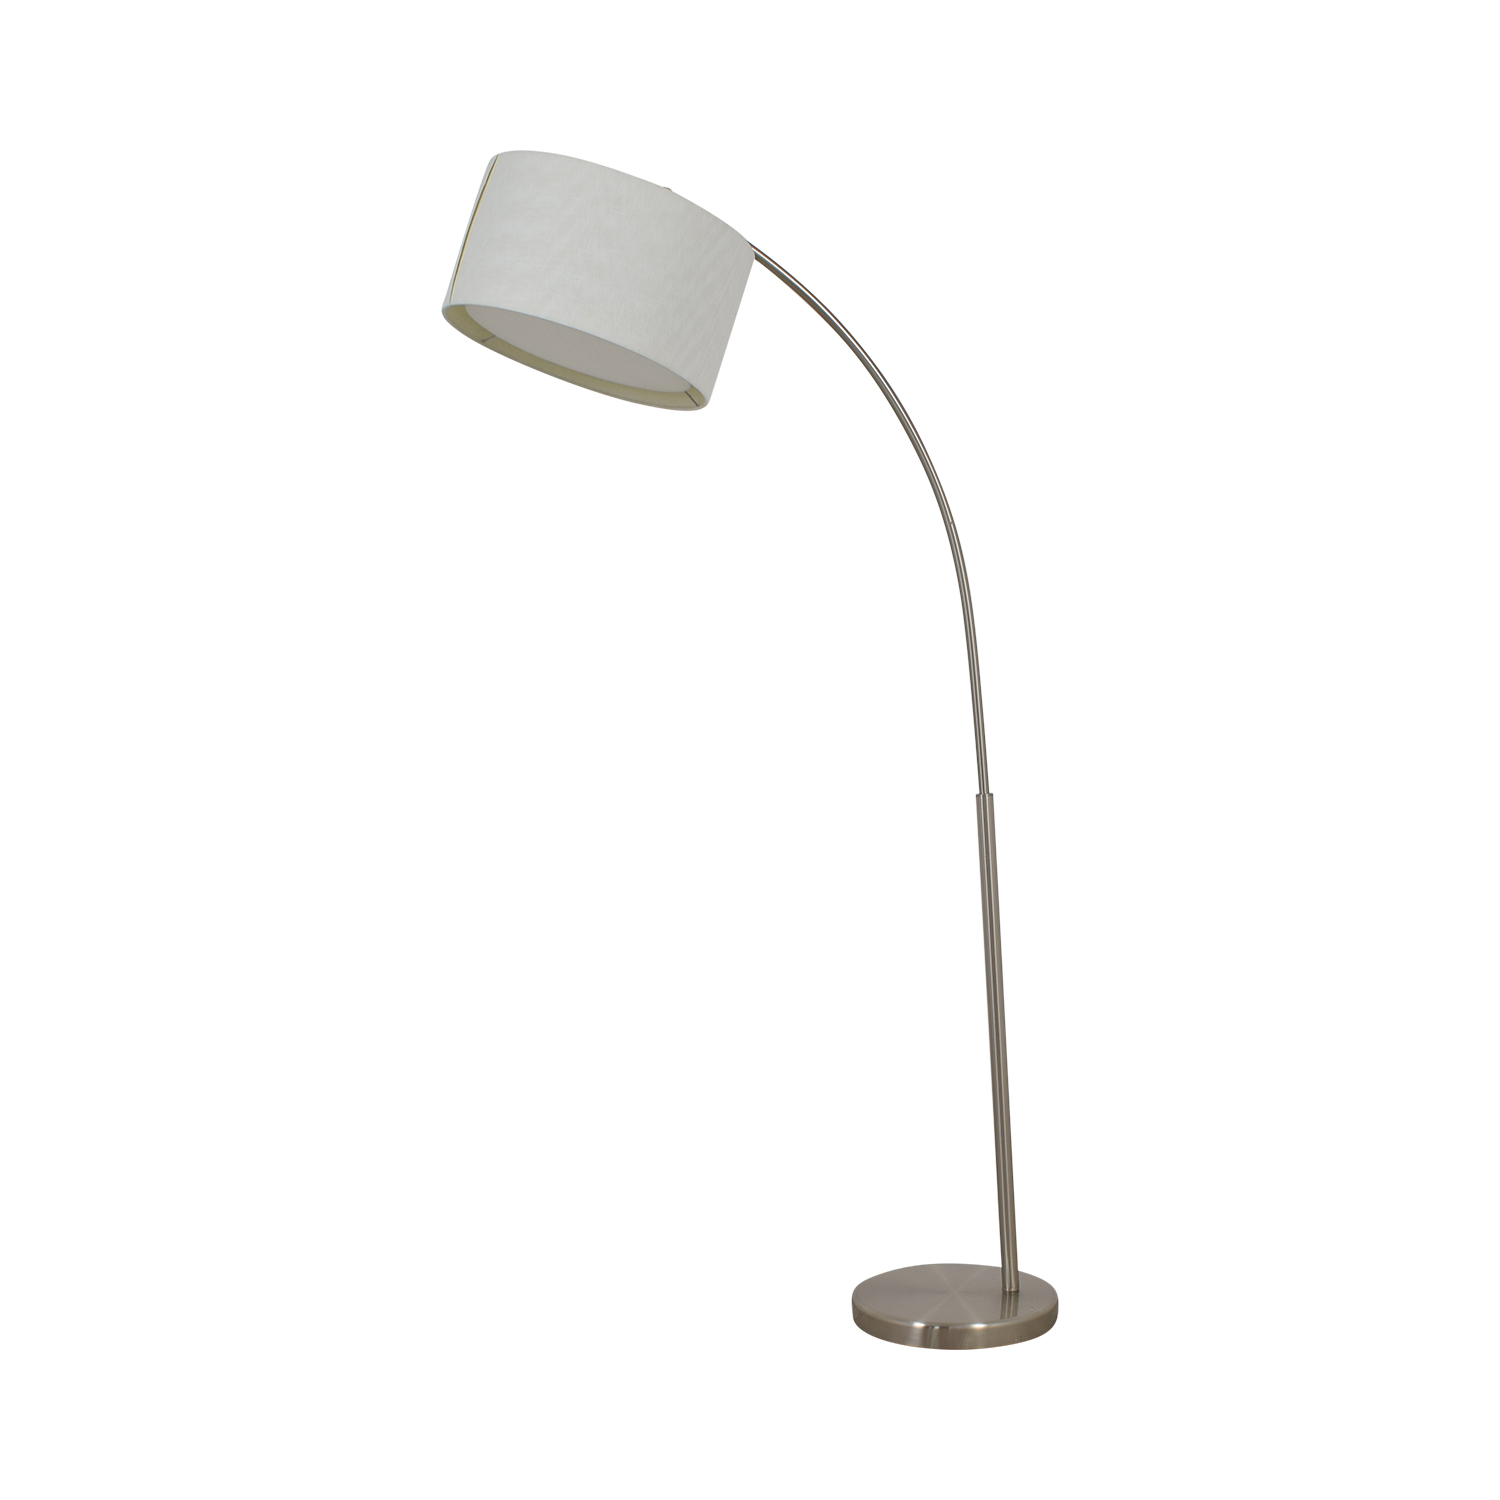 CB2 CB2 Arched Floor Lamp for sale